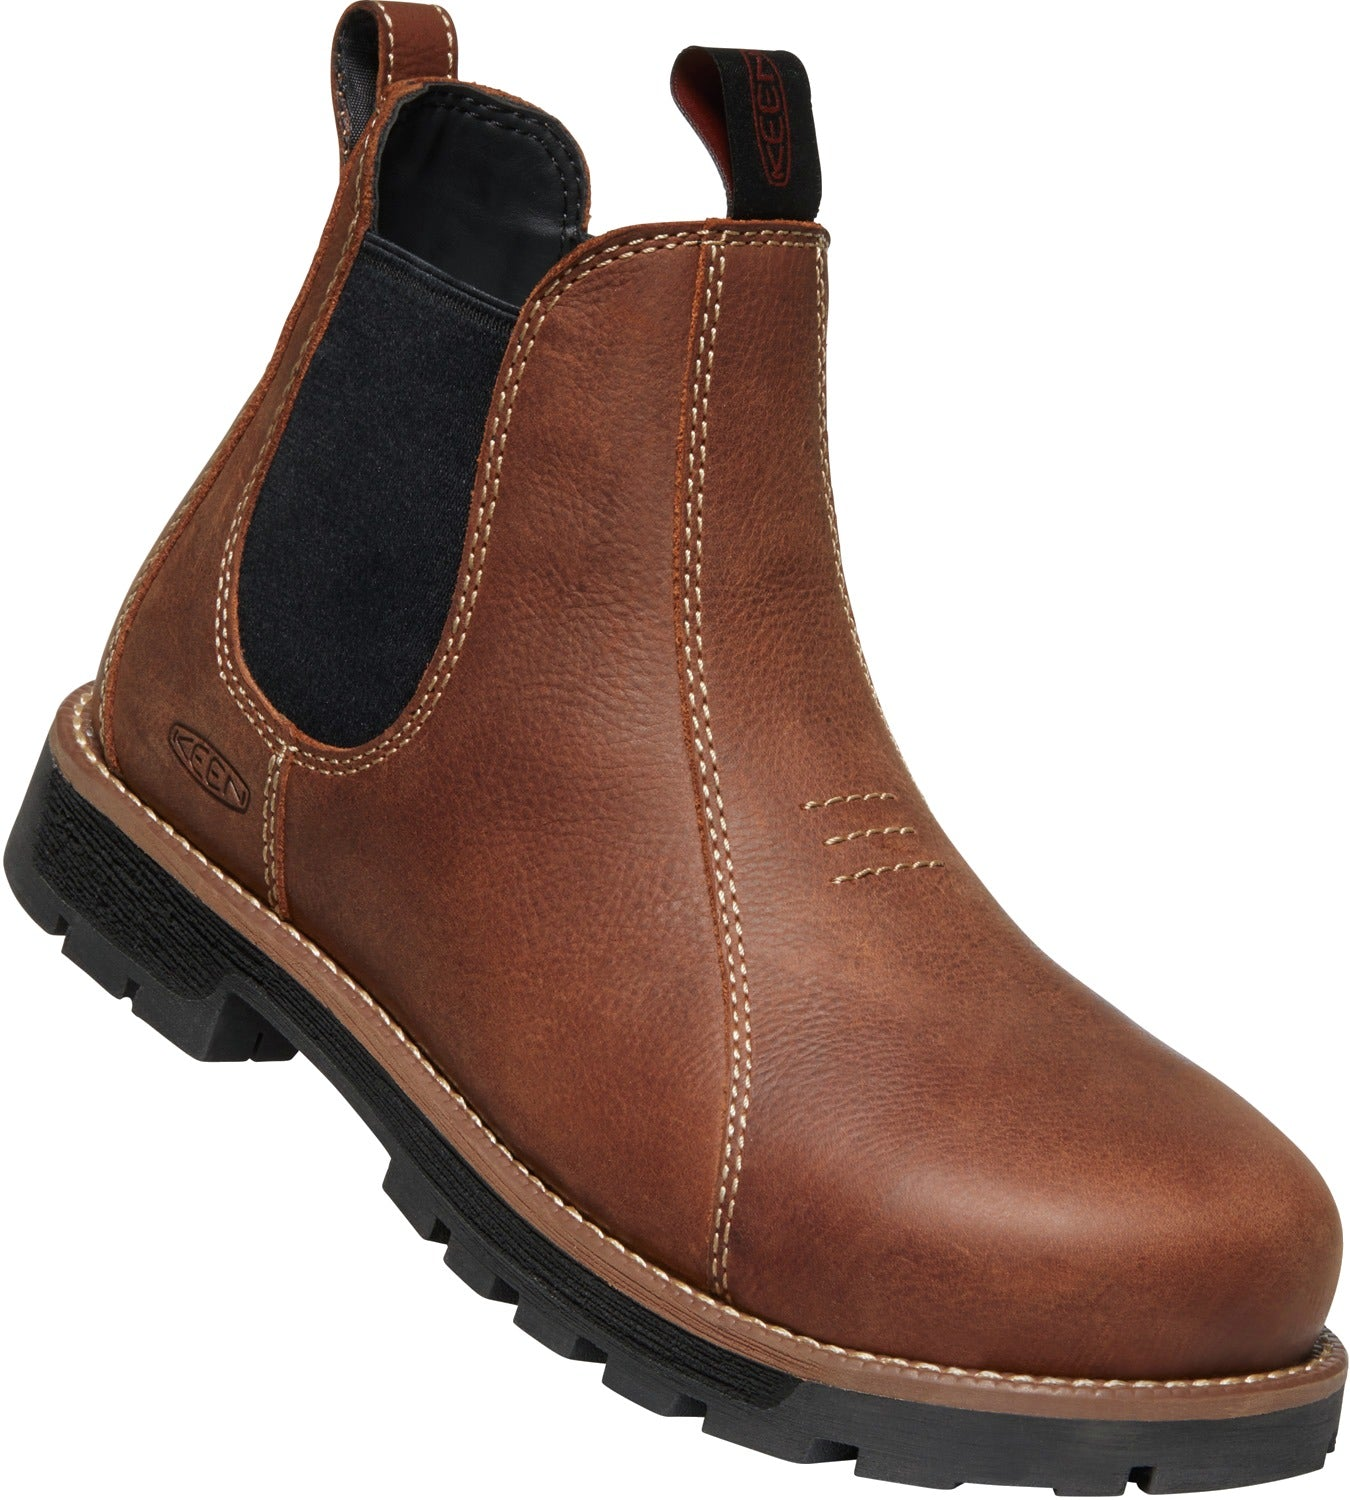 'Keen' 1022086 - Women's Seattle Romeo  ST EH Pull On - Gingerbread / Black